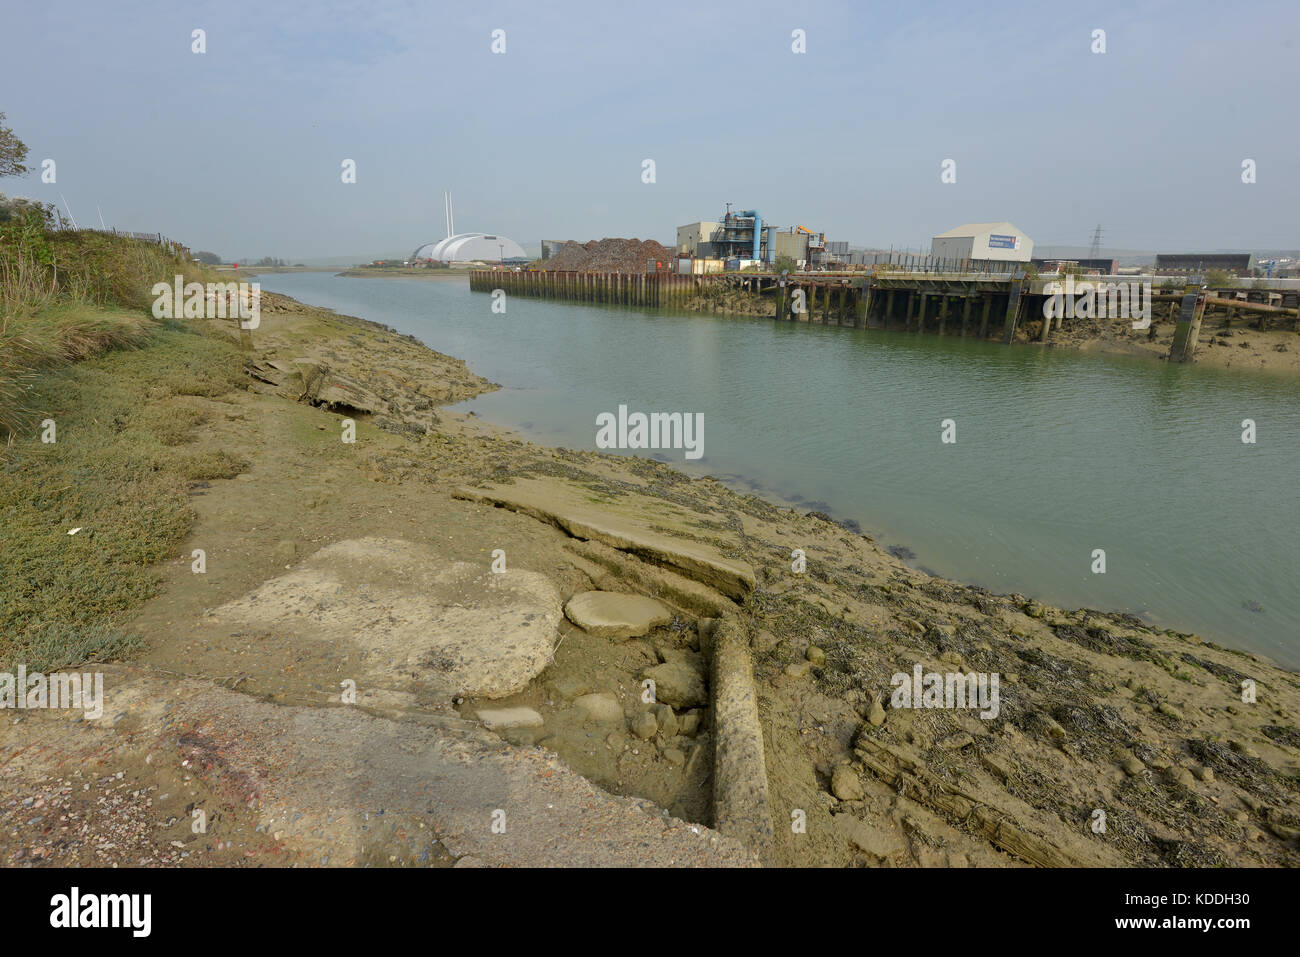 River Ouse at Newhaven, East Sussex, showing industrial buildings including household waste incinerator. - Stock Image